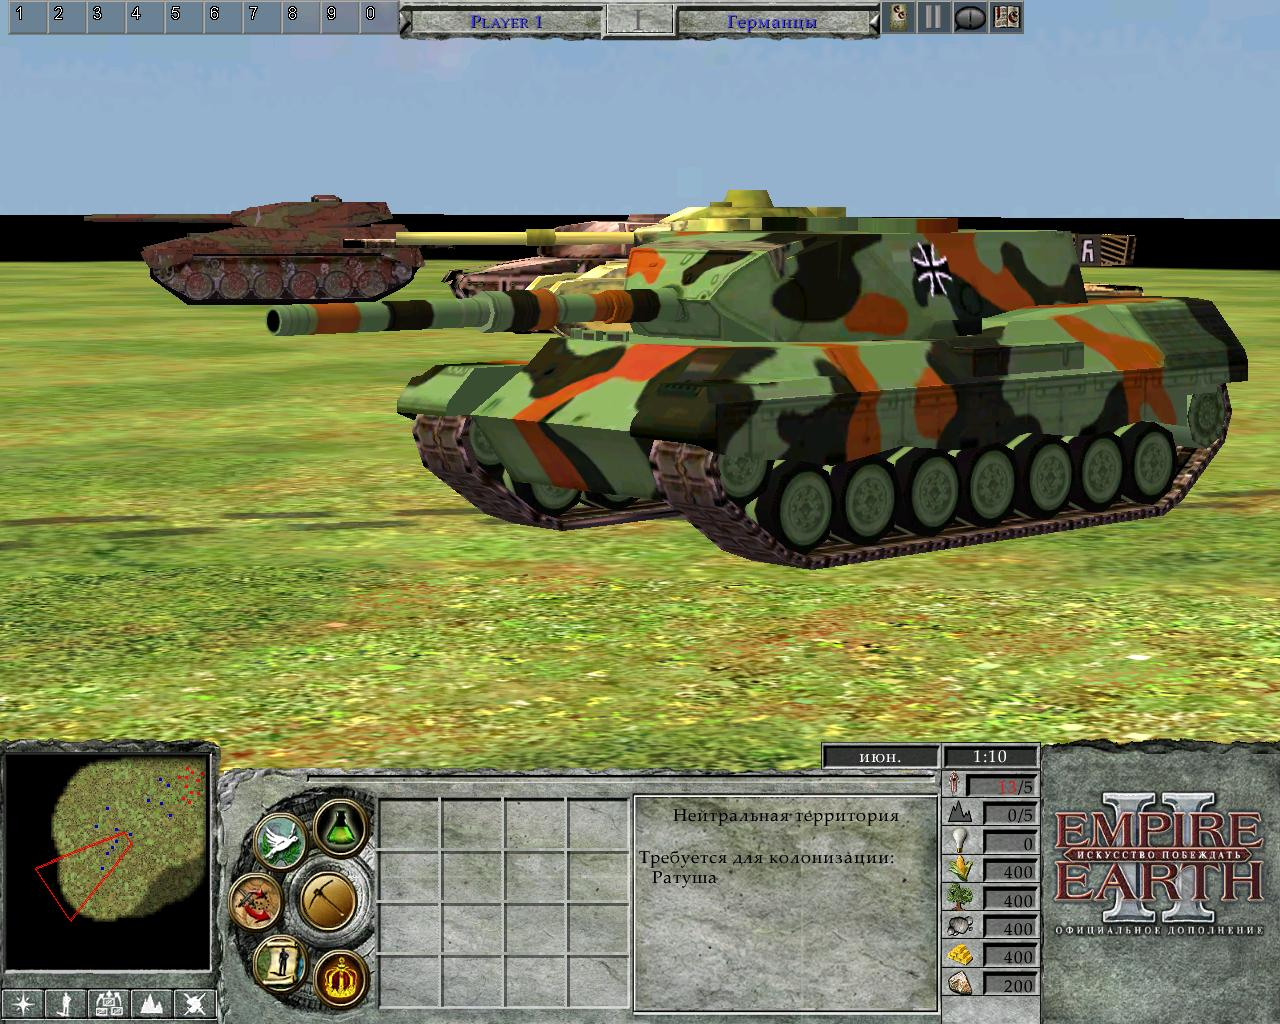 Empire Earth 4 Mod Image Mod DB